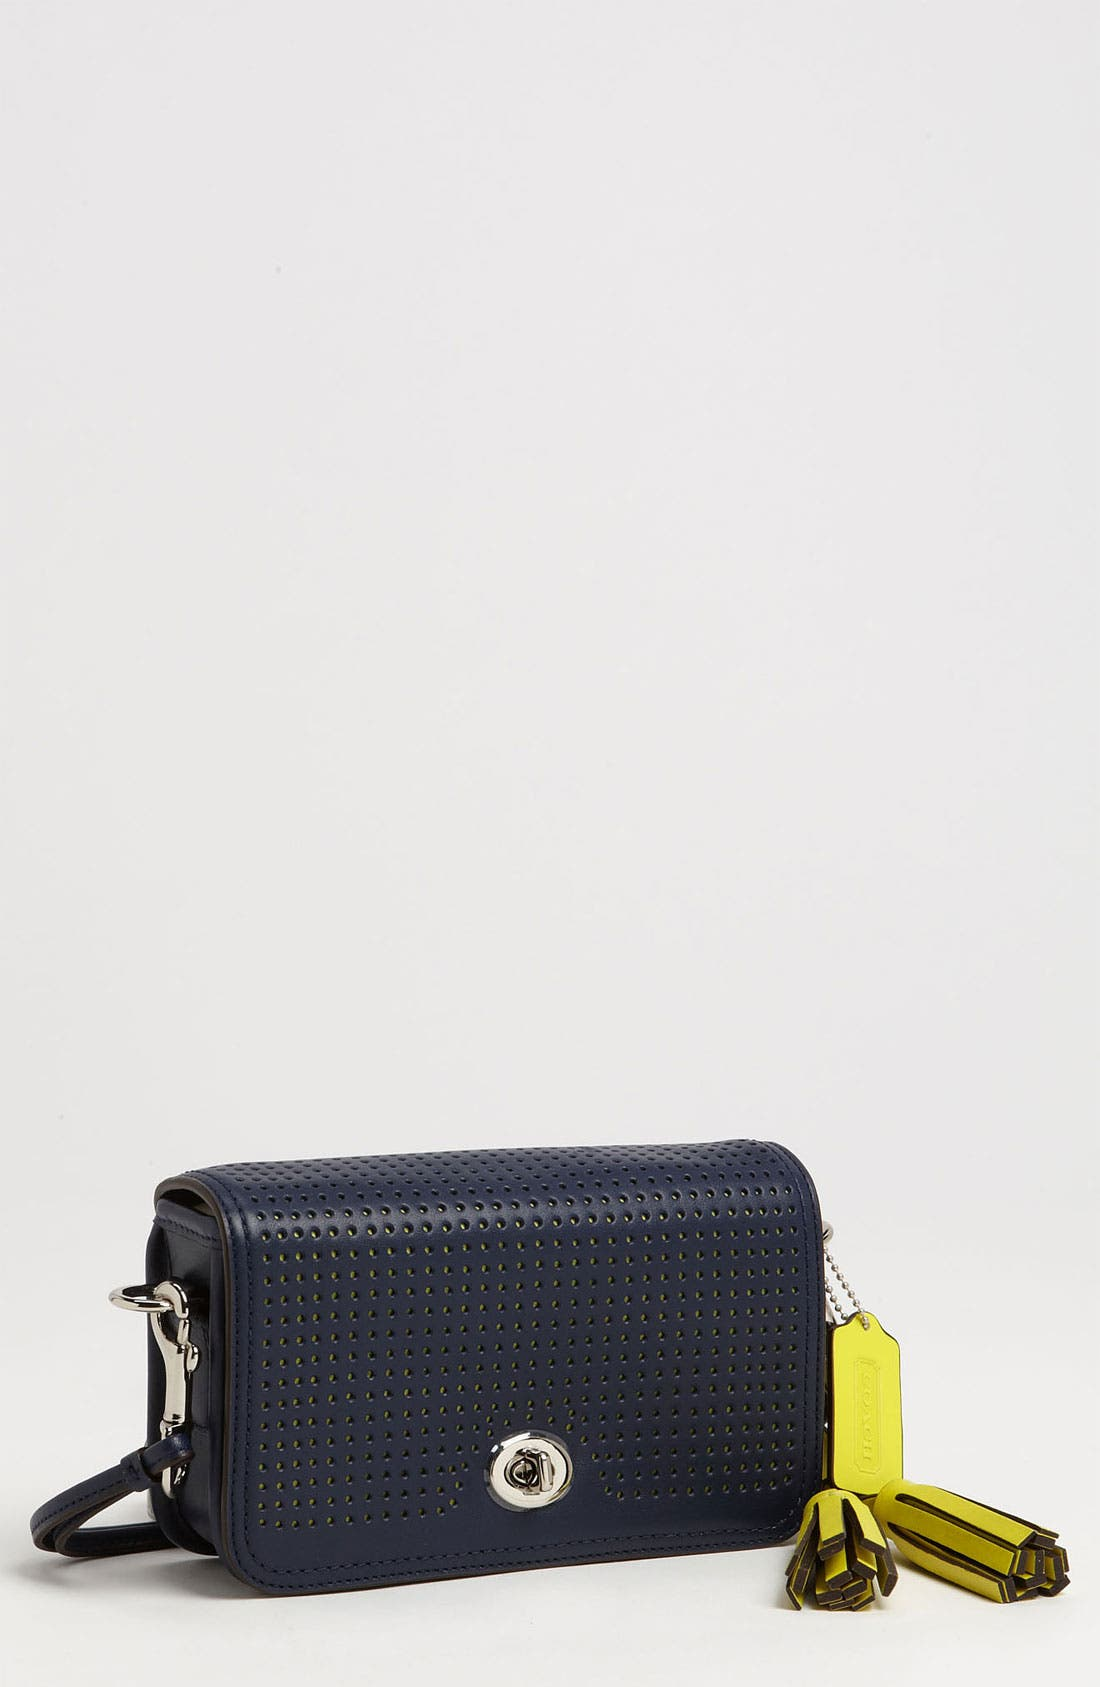 Main Image - COACH 'Legacy - Penny' Perforated Leather Crossbody Bag